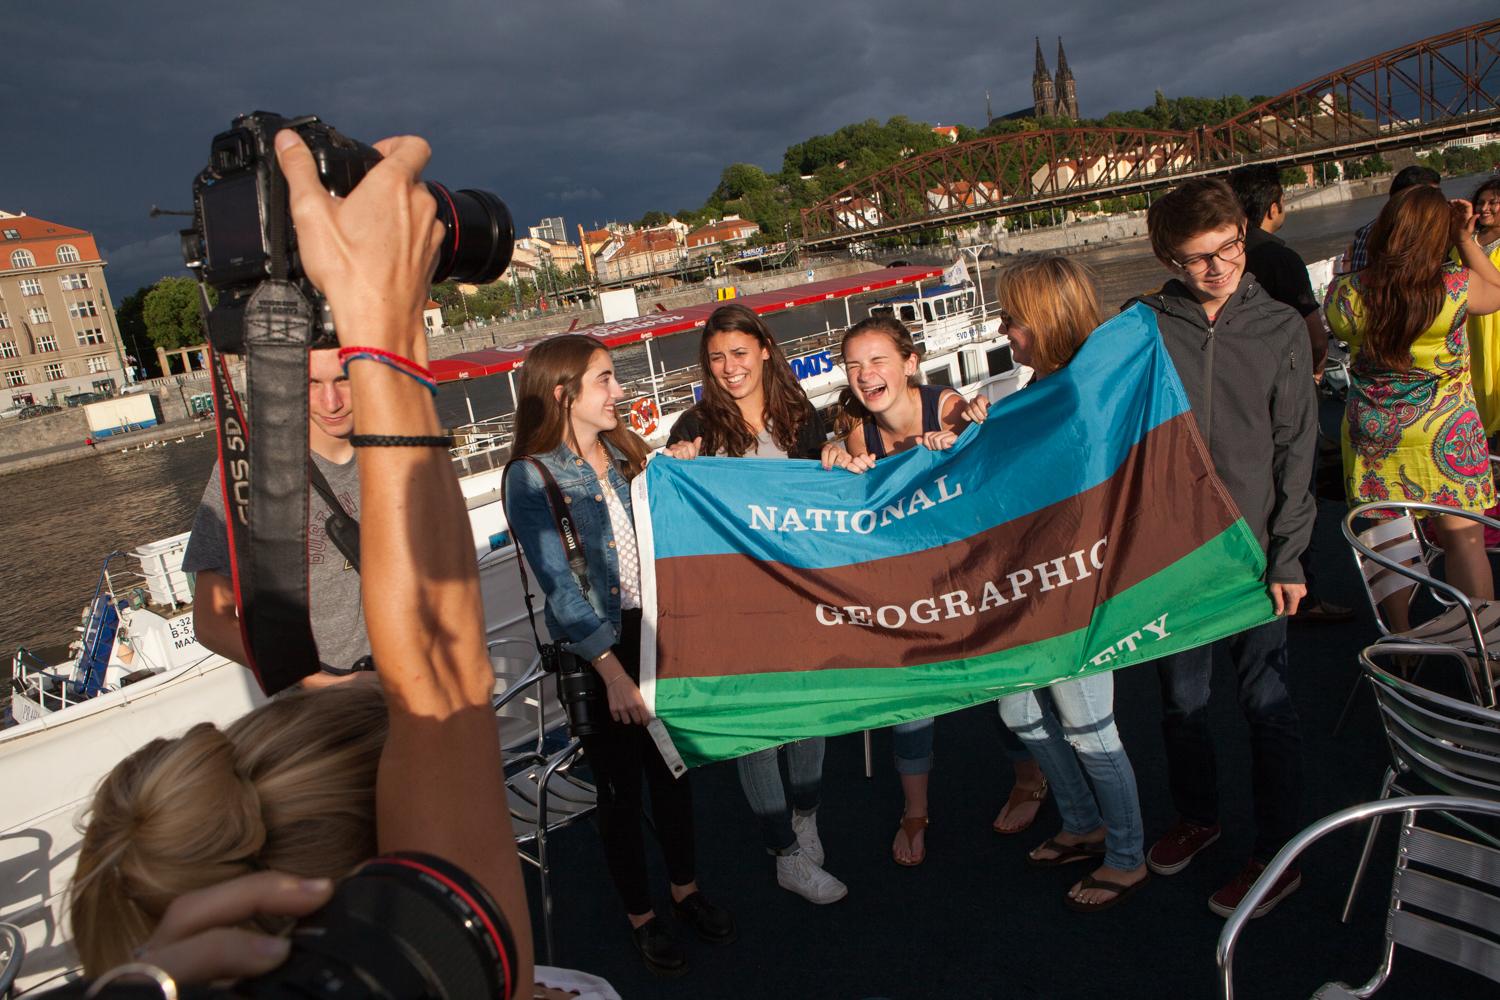 20140701_Prague_National_Geographic_Student_Expeditions_2653.jpg